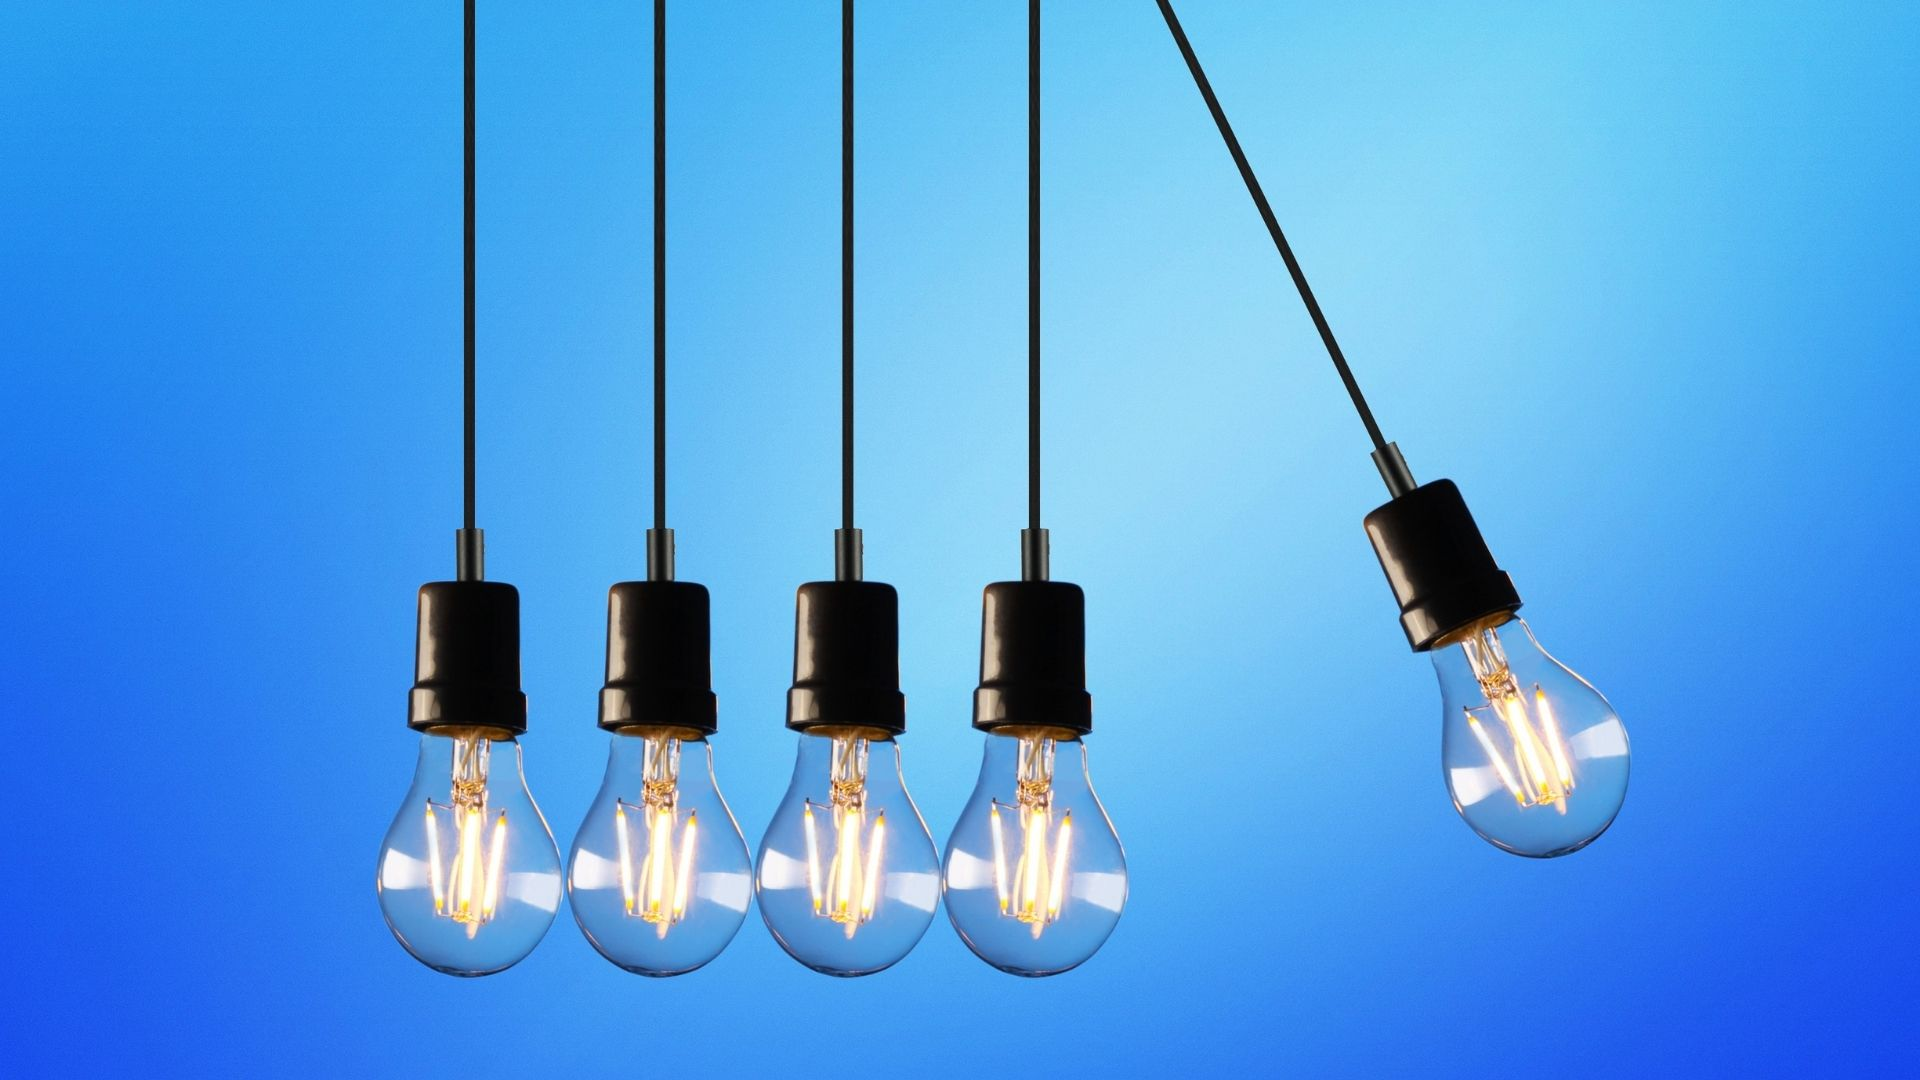 My Electrical Expert Offers a Range of Electrical Services Backed By Years of Industry Expertise